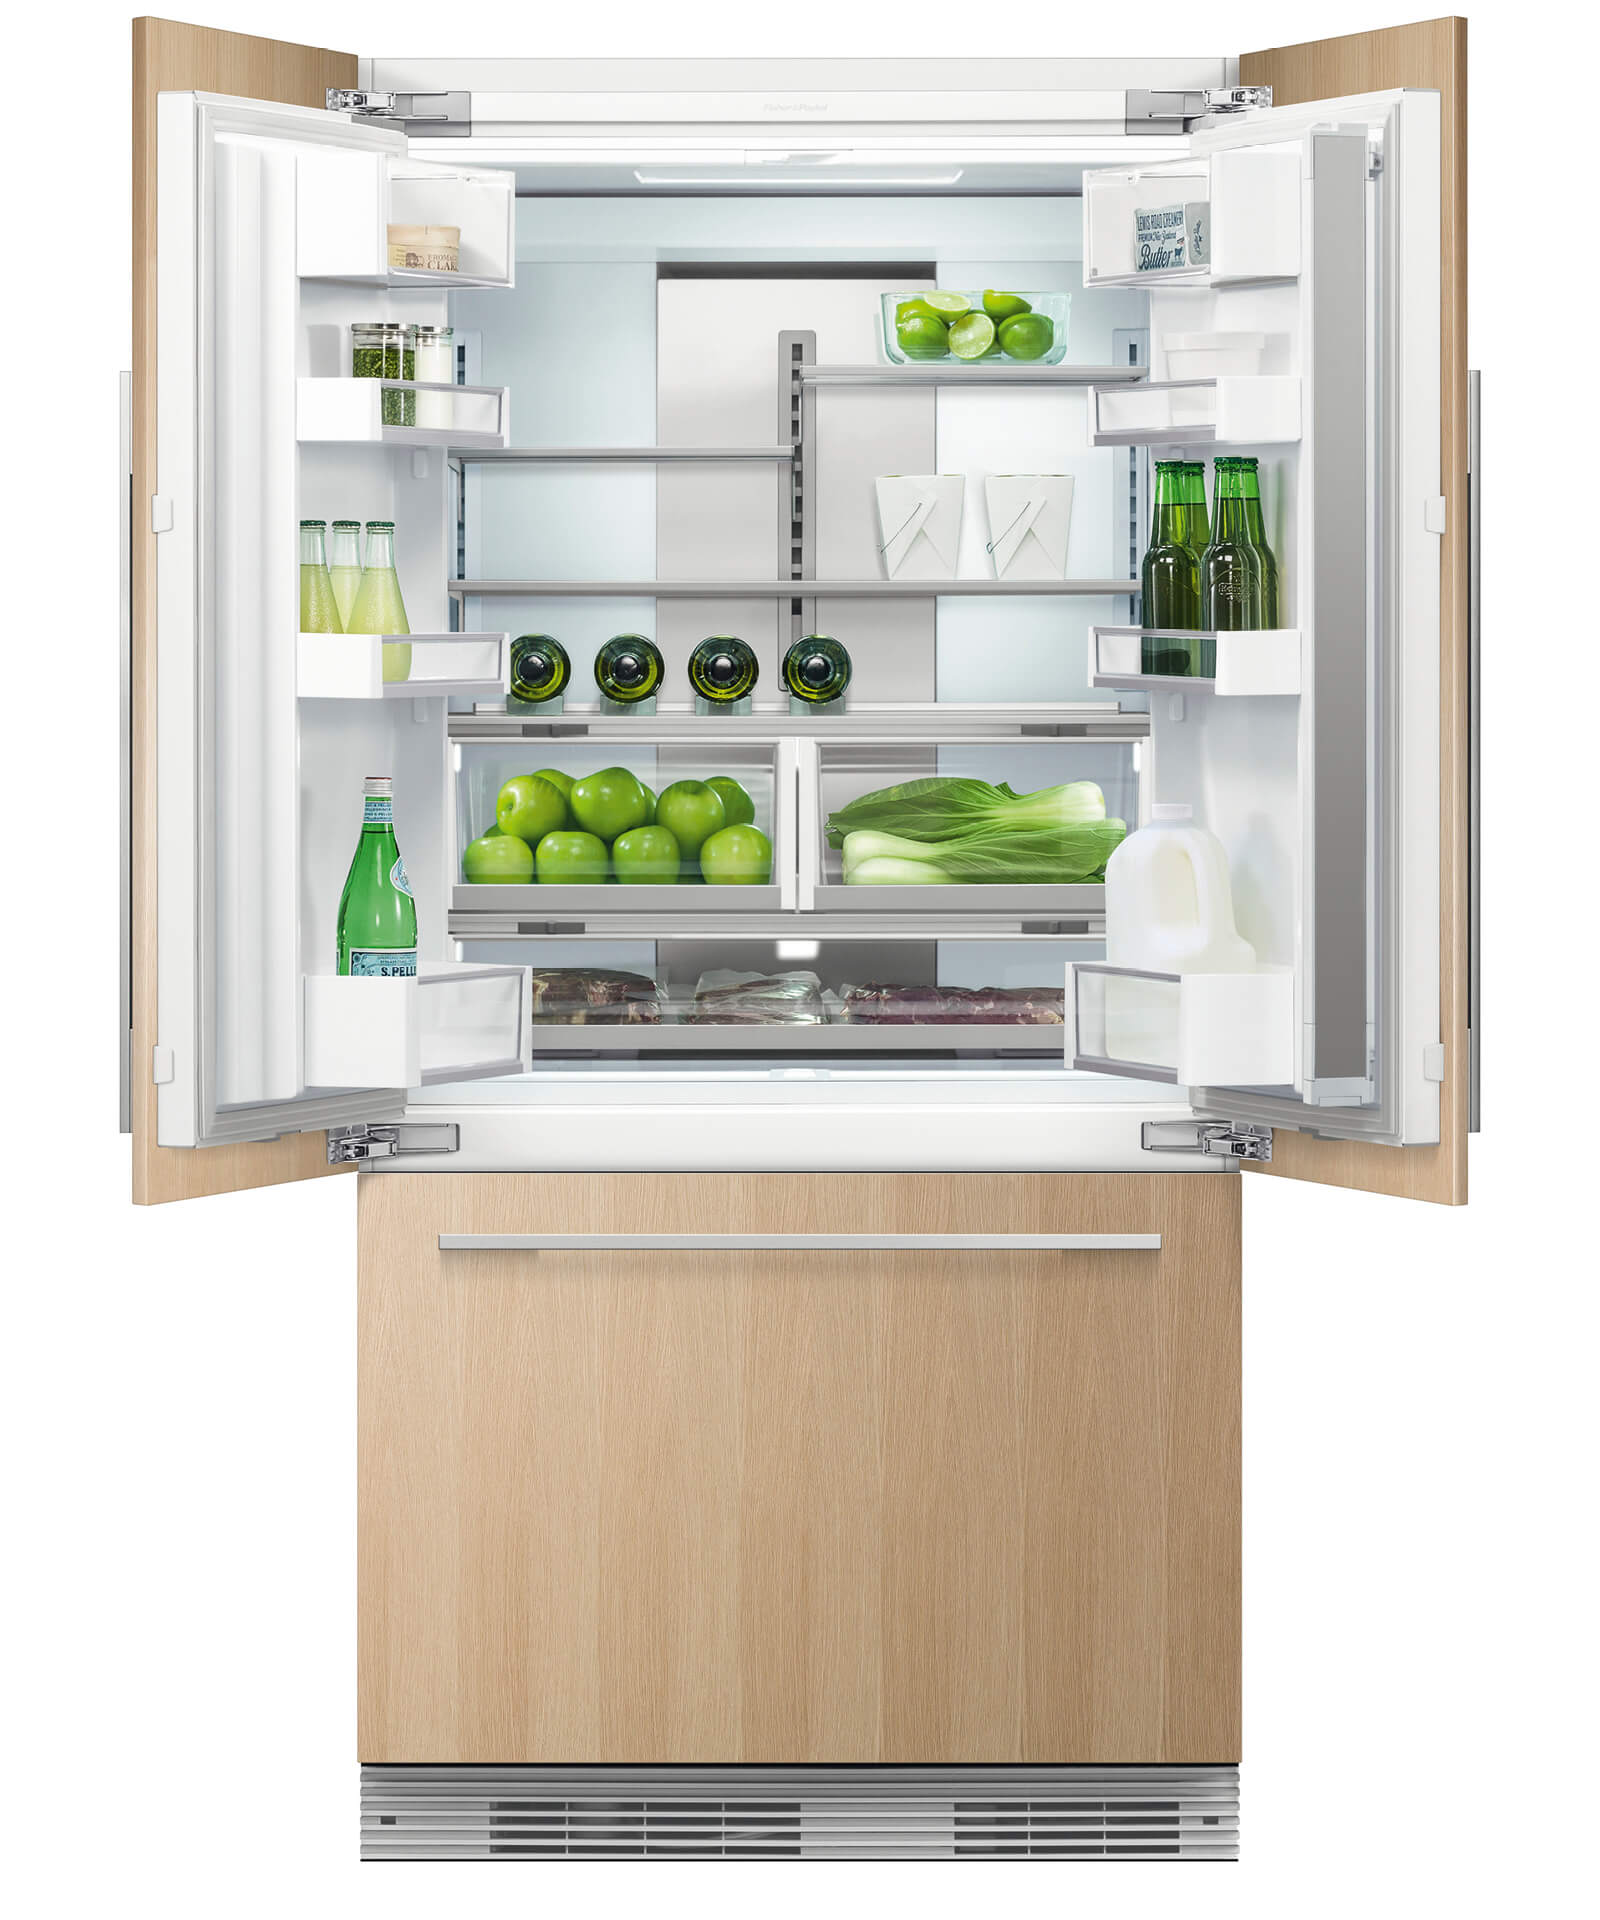 Rs36a72j1n Integrated Refrigerator With Ice Fisher Paykel Us